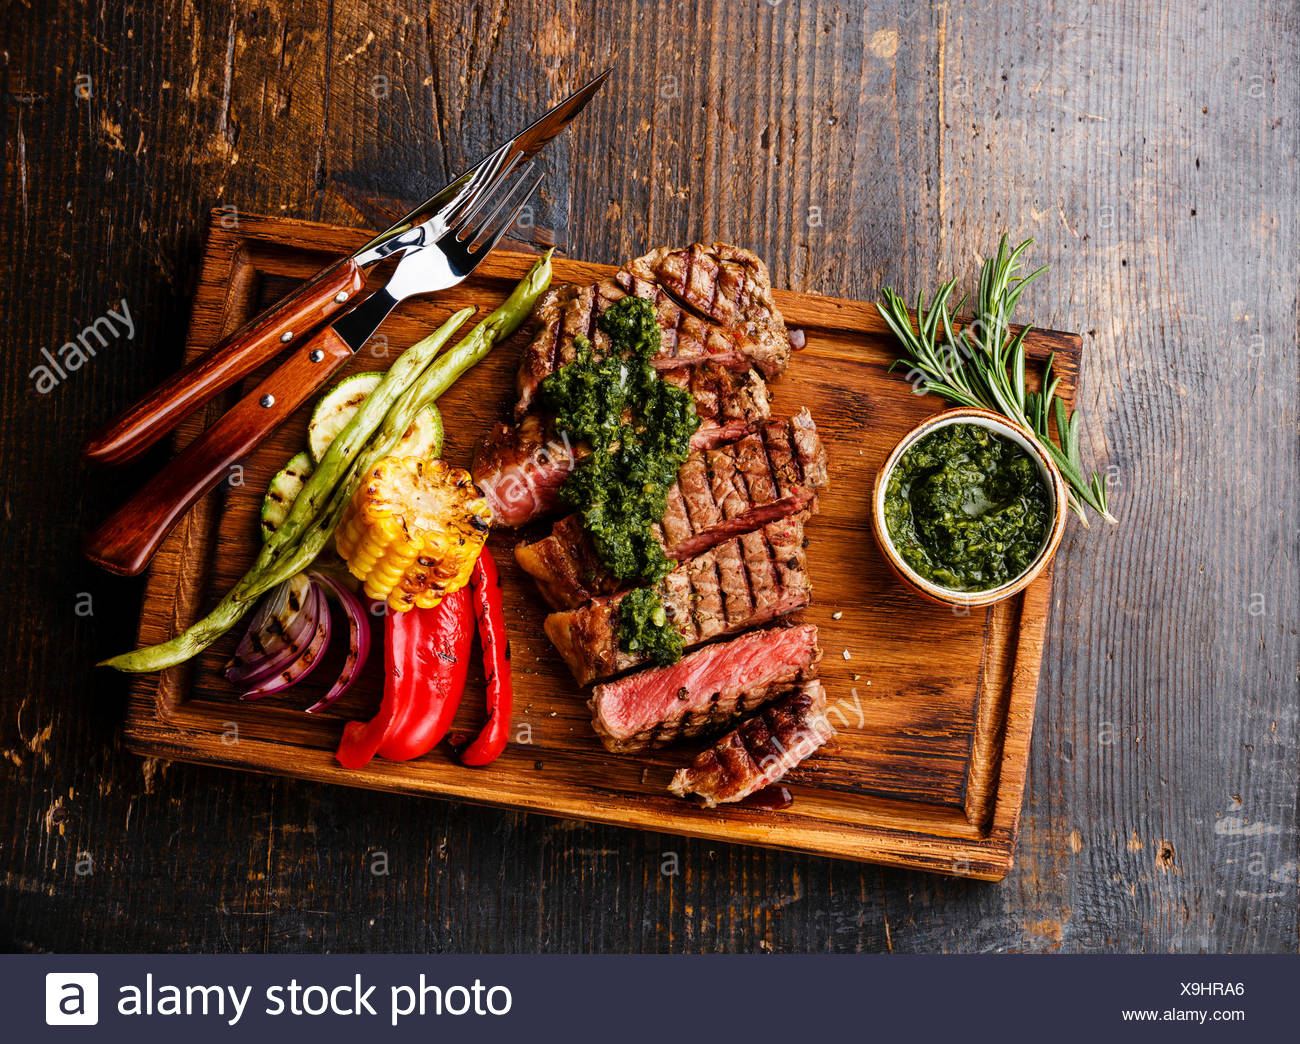 Sliced Striploin steak with chimichurri sauce and Grilled vegetables on cutting board on dark background - Stock Image